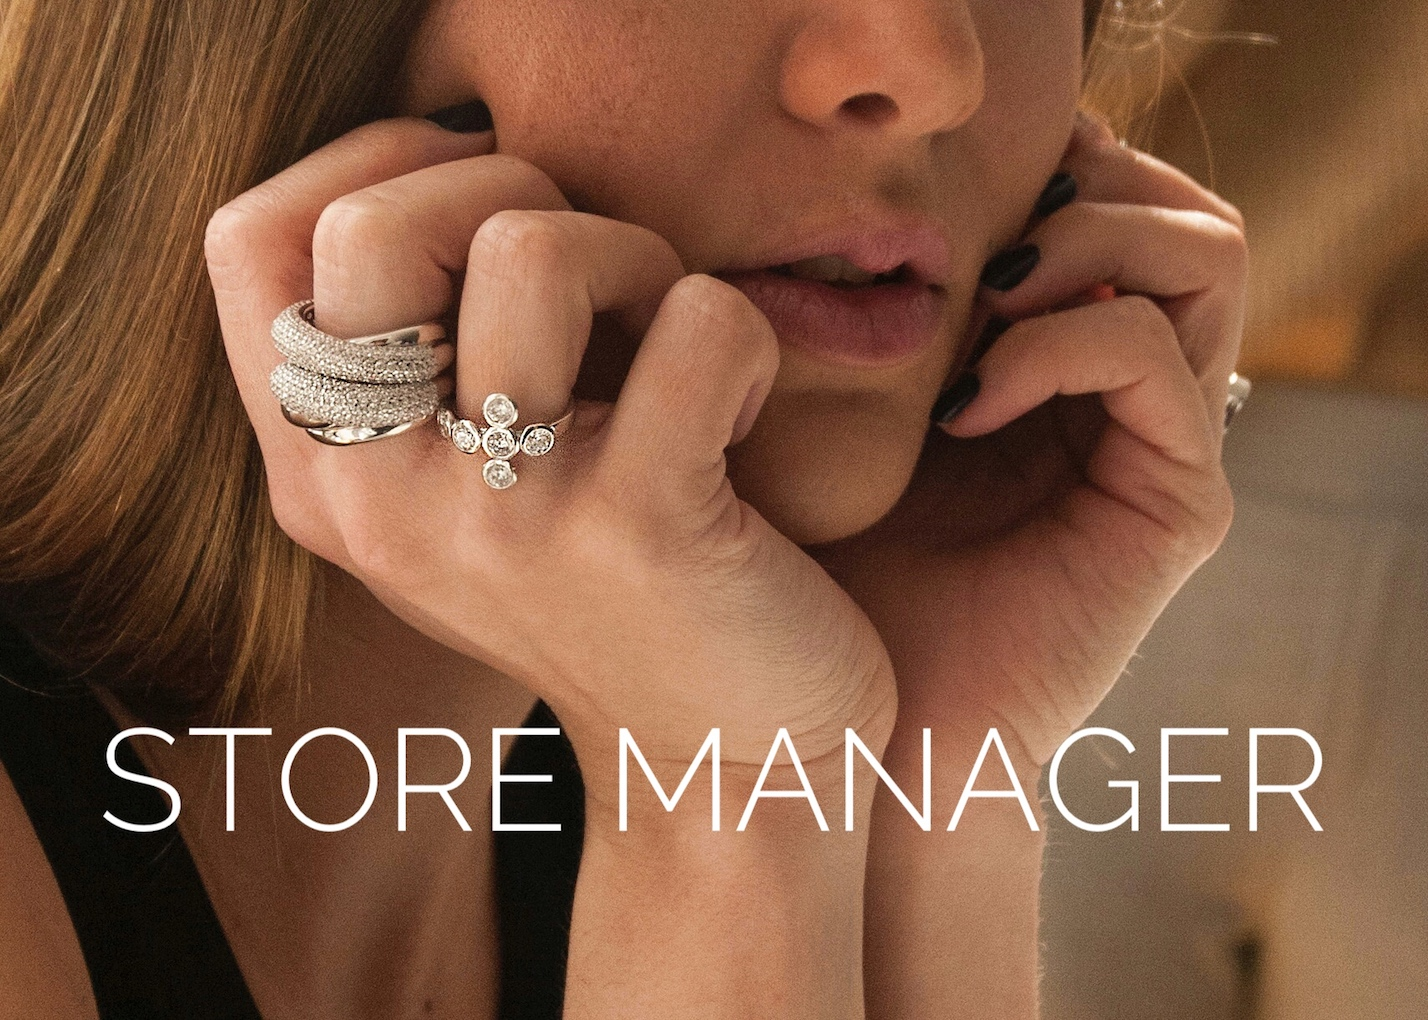 STORE MANAGER 248958